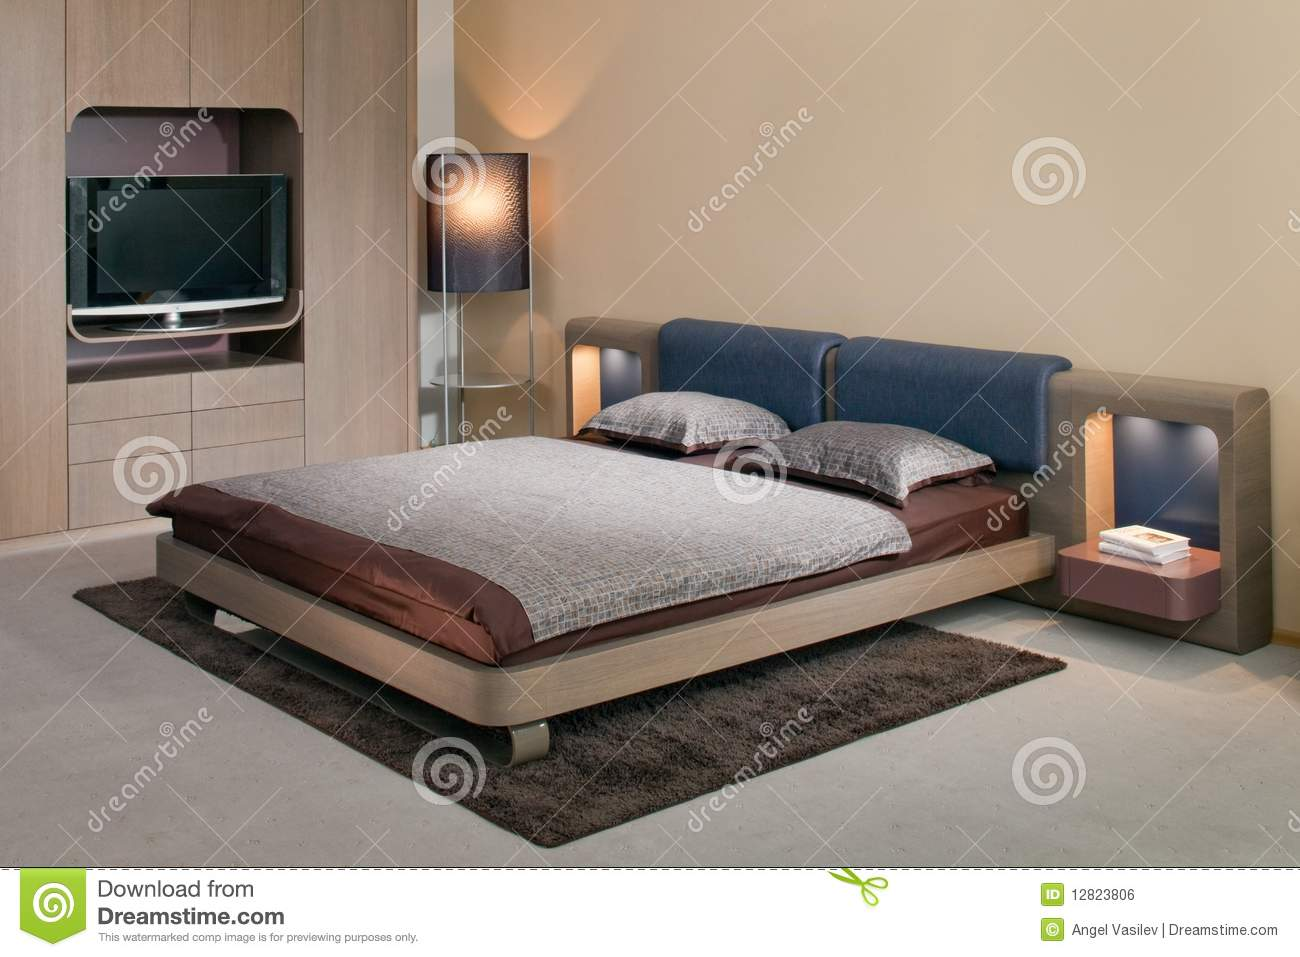 Elegant And Luxury Bedroom Interior Design Royalty Free